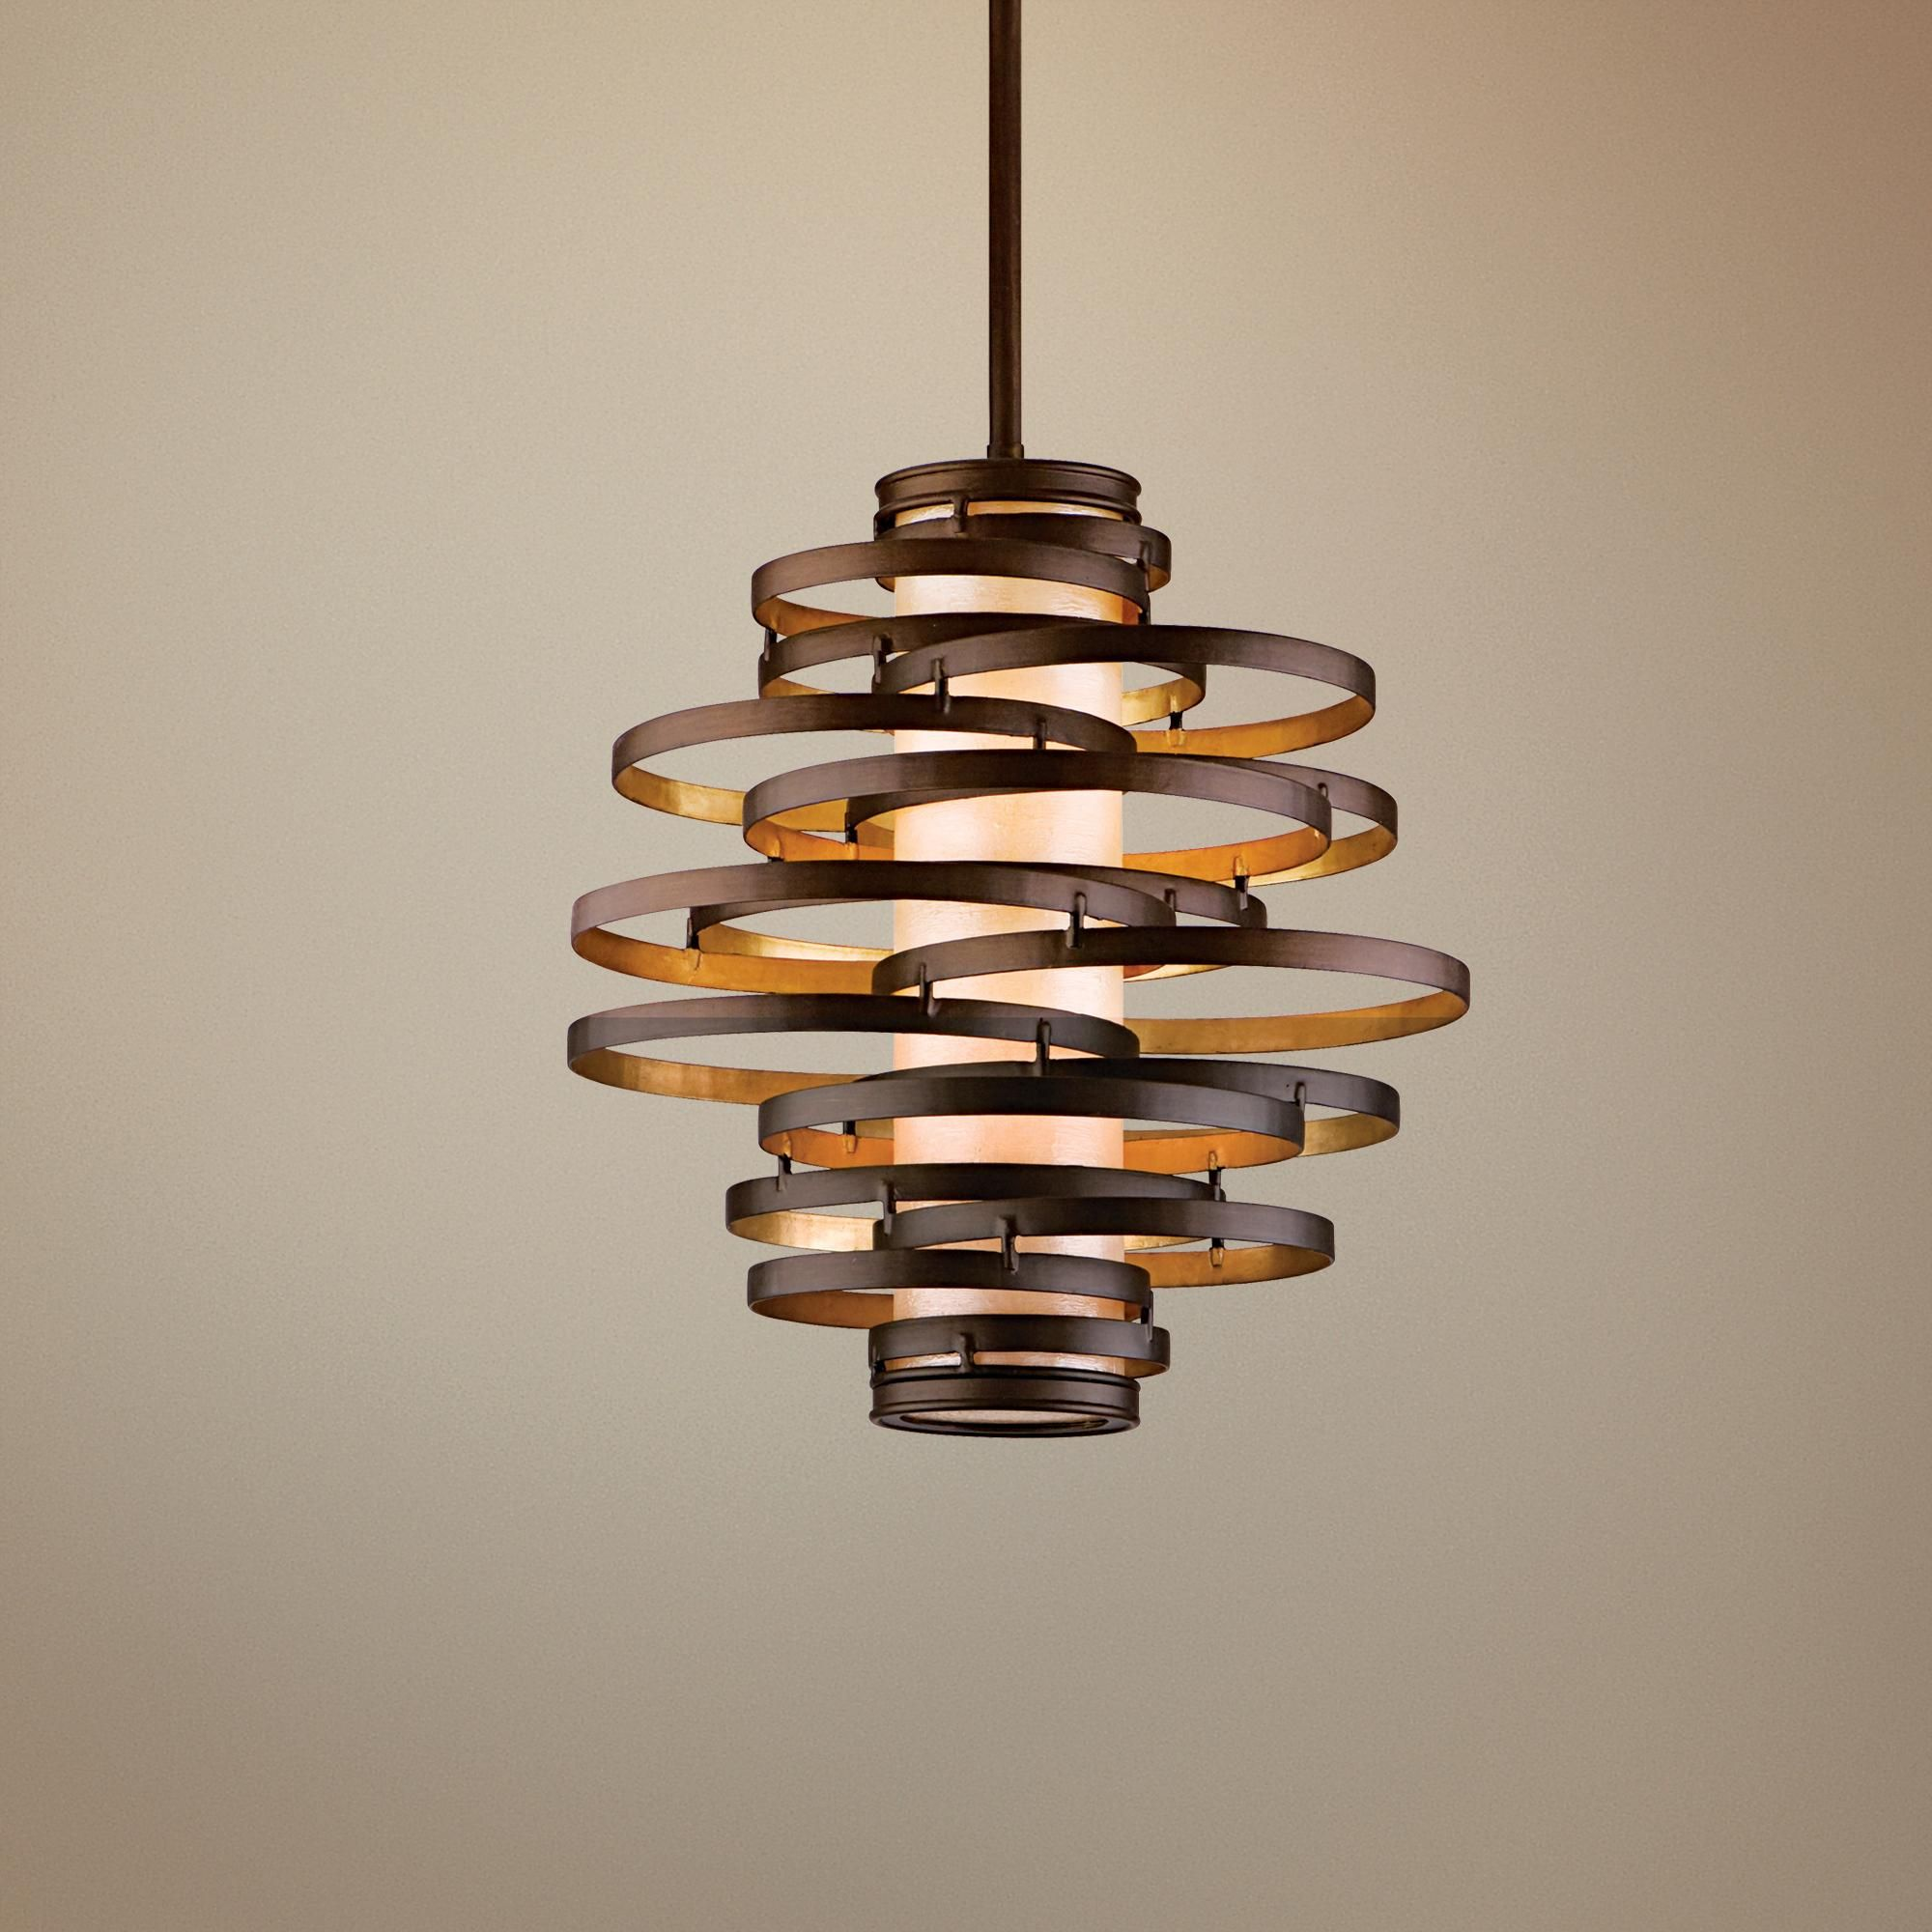 pendant by lemaisonfresh of vertigo statement lamp a constance guisset lighting